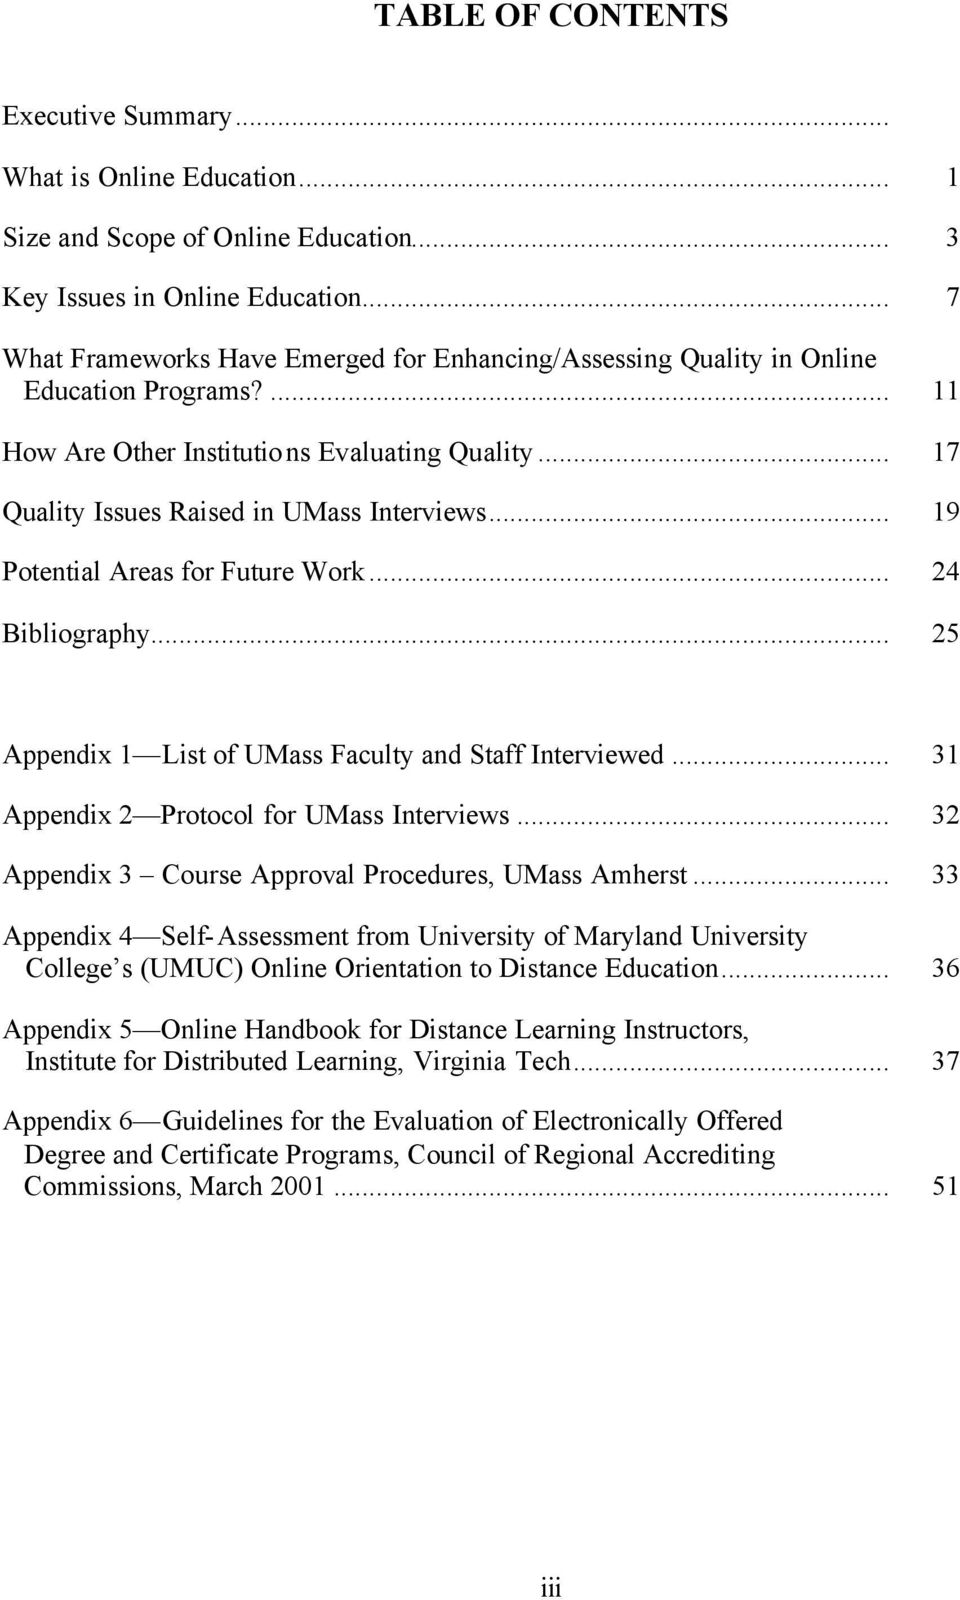 .. 19 Potential Areas for Future Work... 24 Bibliography... 25 Appendix 1 List of UMass Faculty and Staff Interviewed... 31 Appendix 2 Protocol for UMass Interviews.